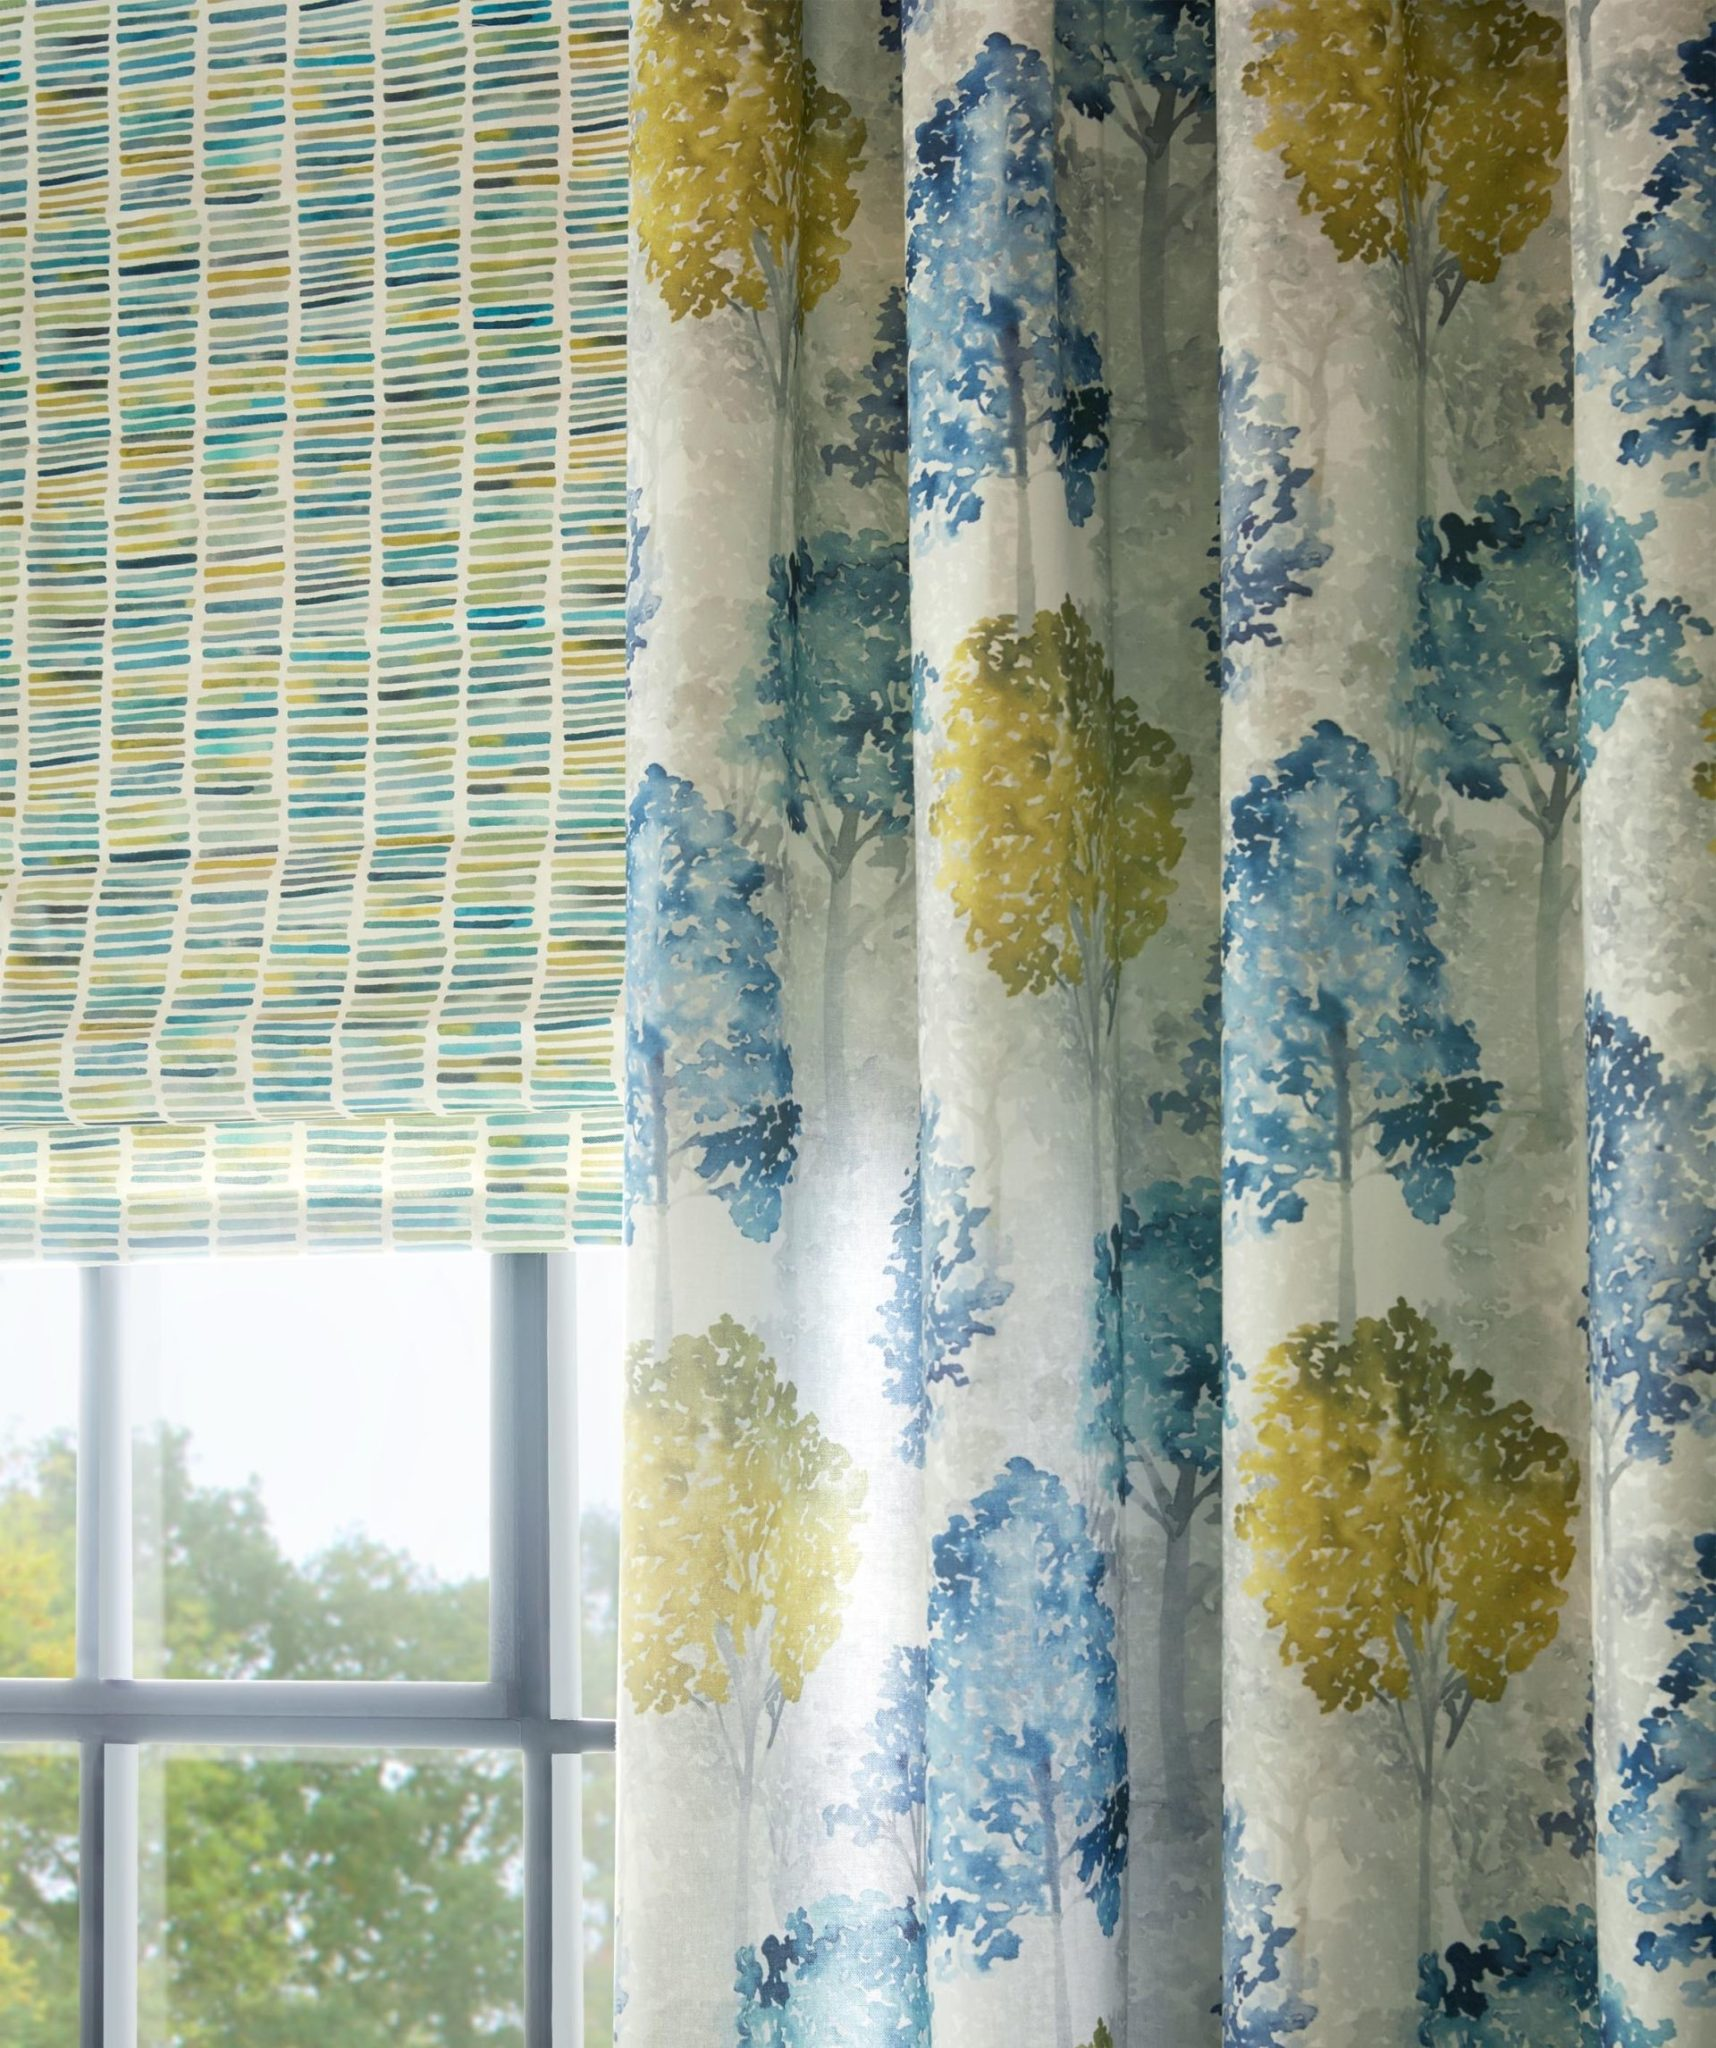 Curtain range offered by Ashley Wilde